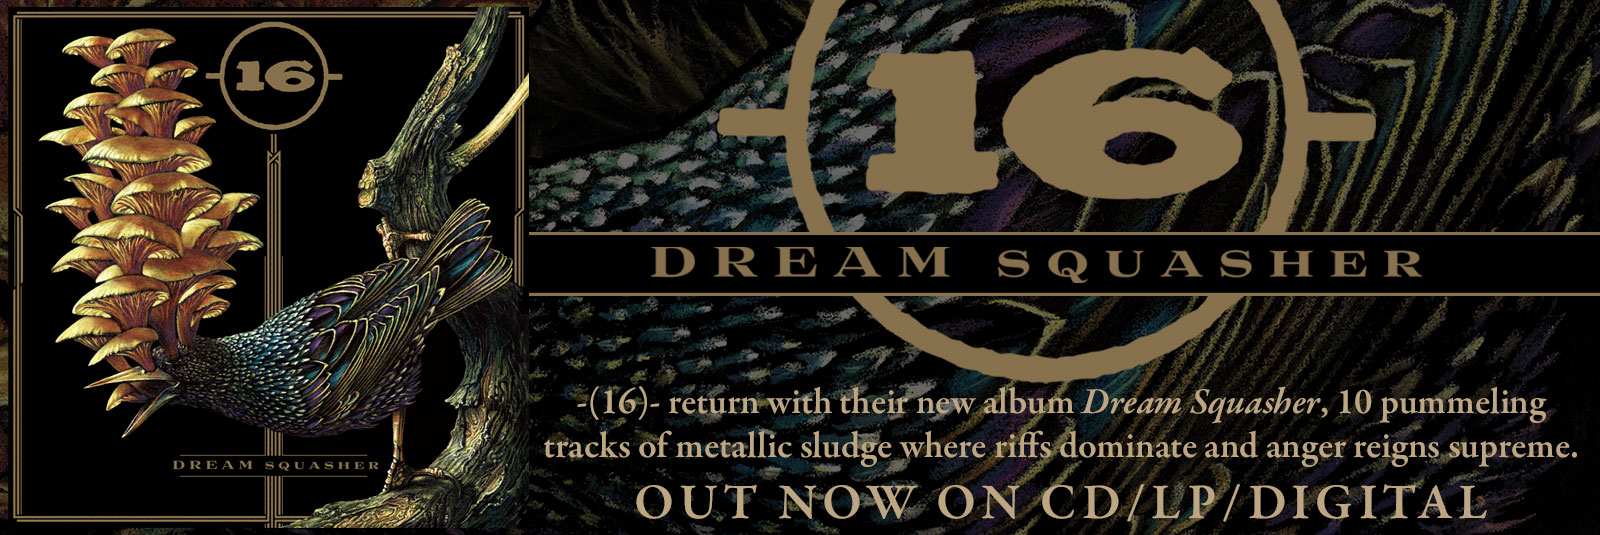 16-dream-squasher-sludge-metal-relapse-out-now